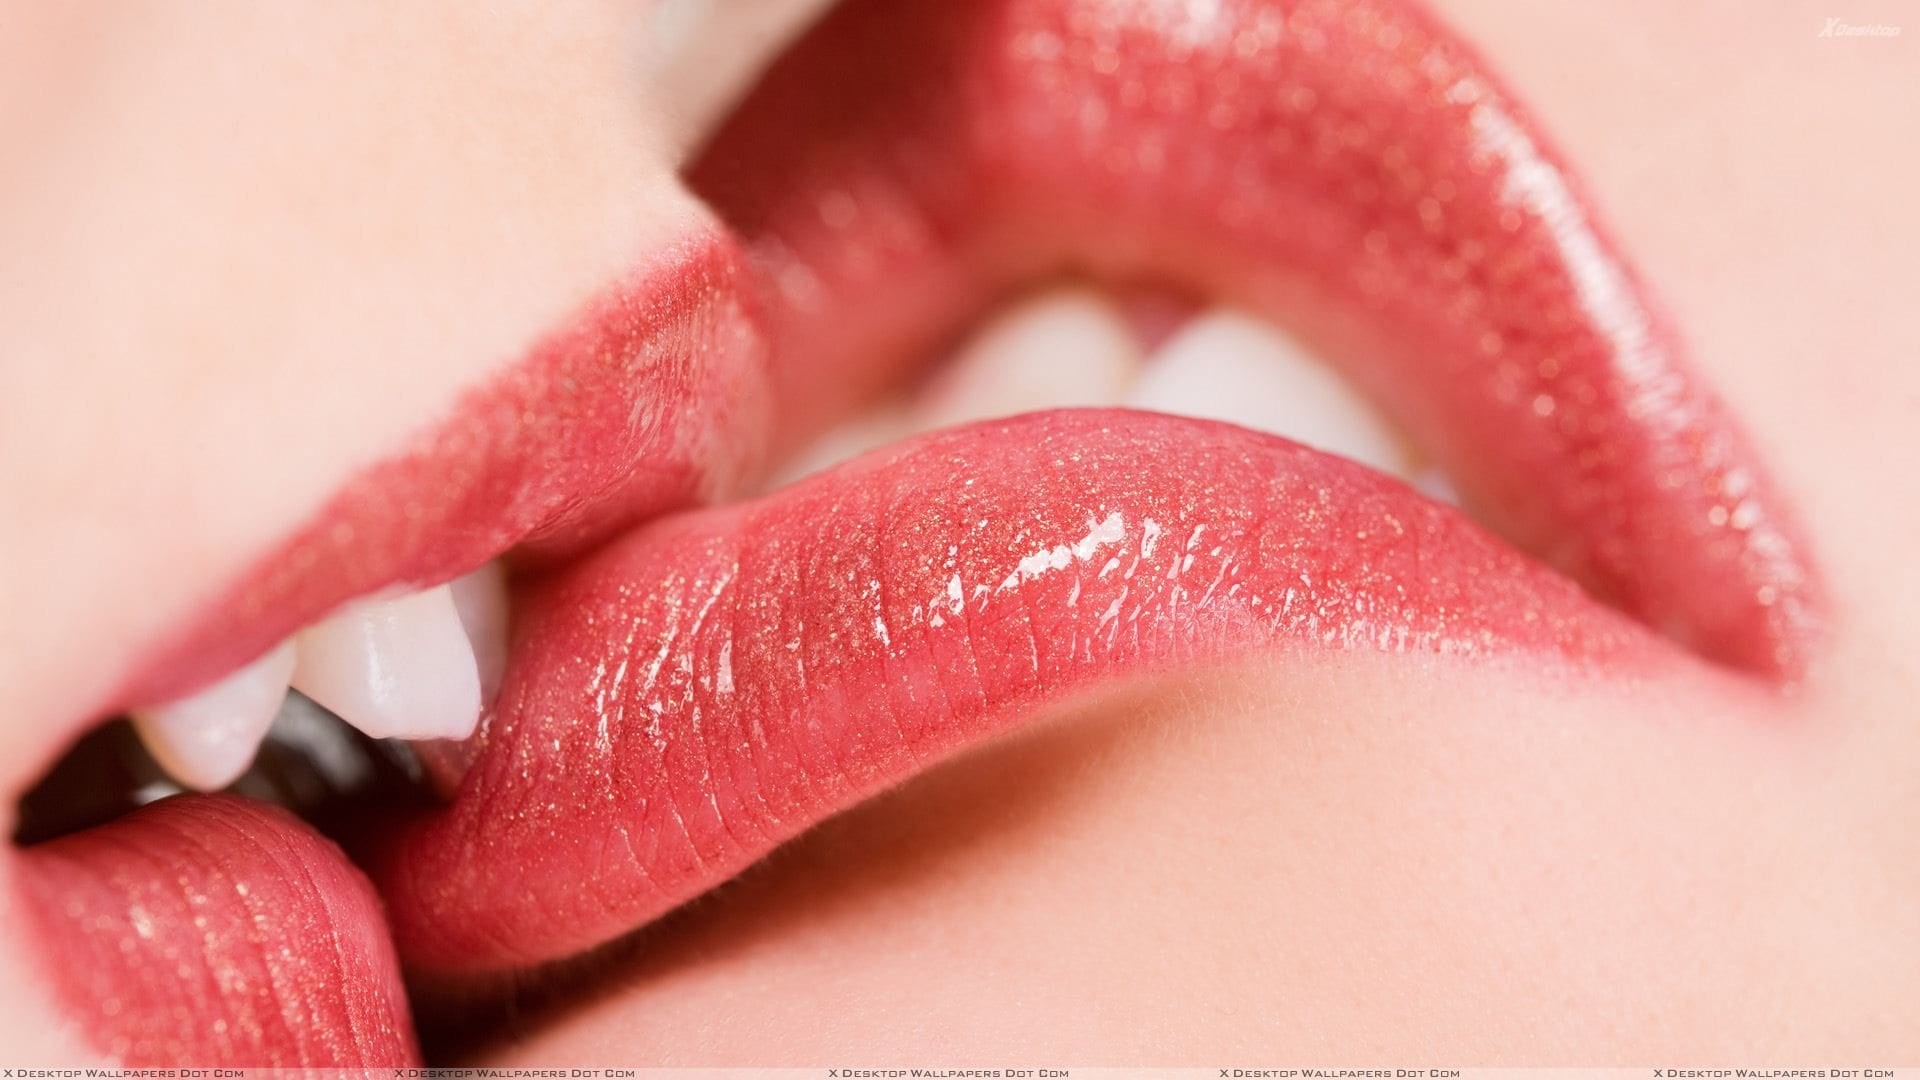 Kissing Glossy Red Lips Closeup